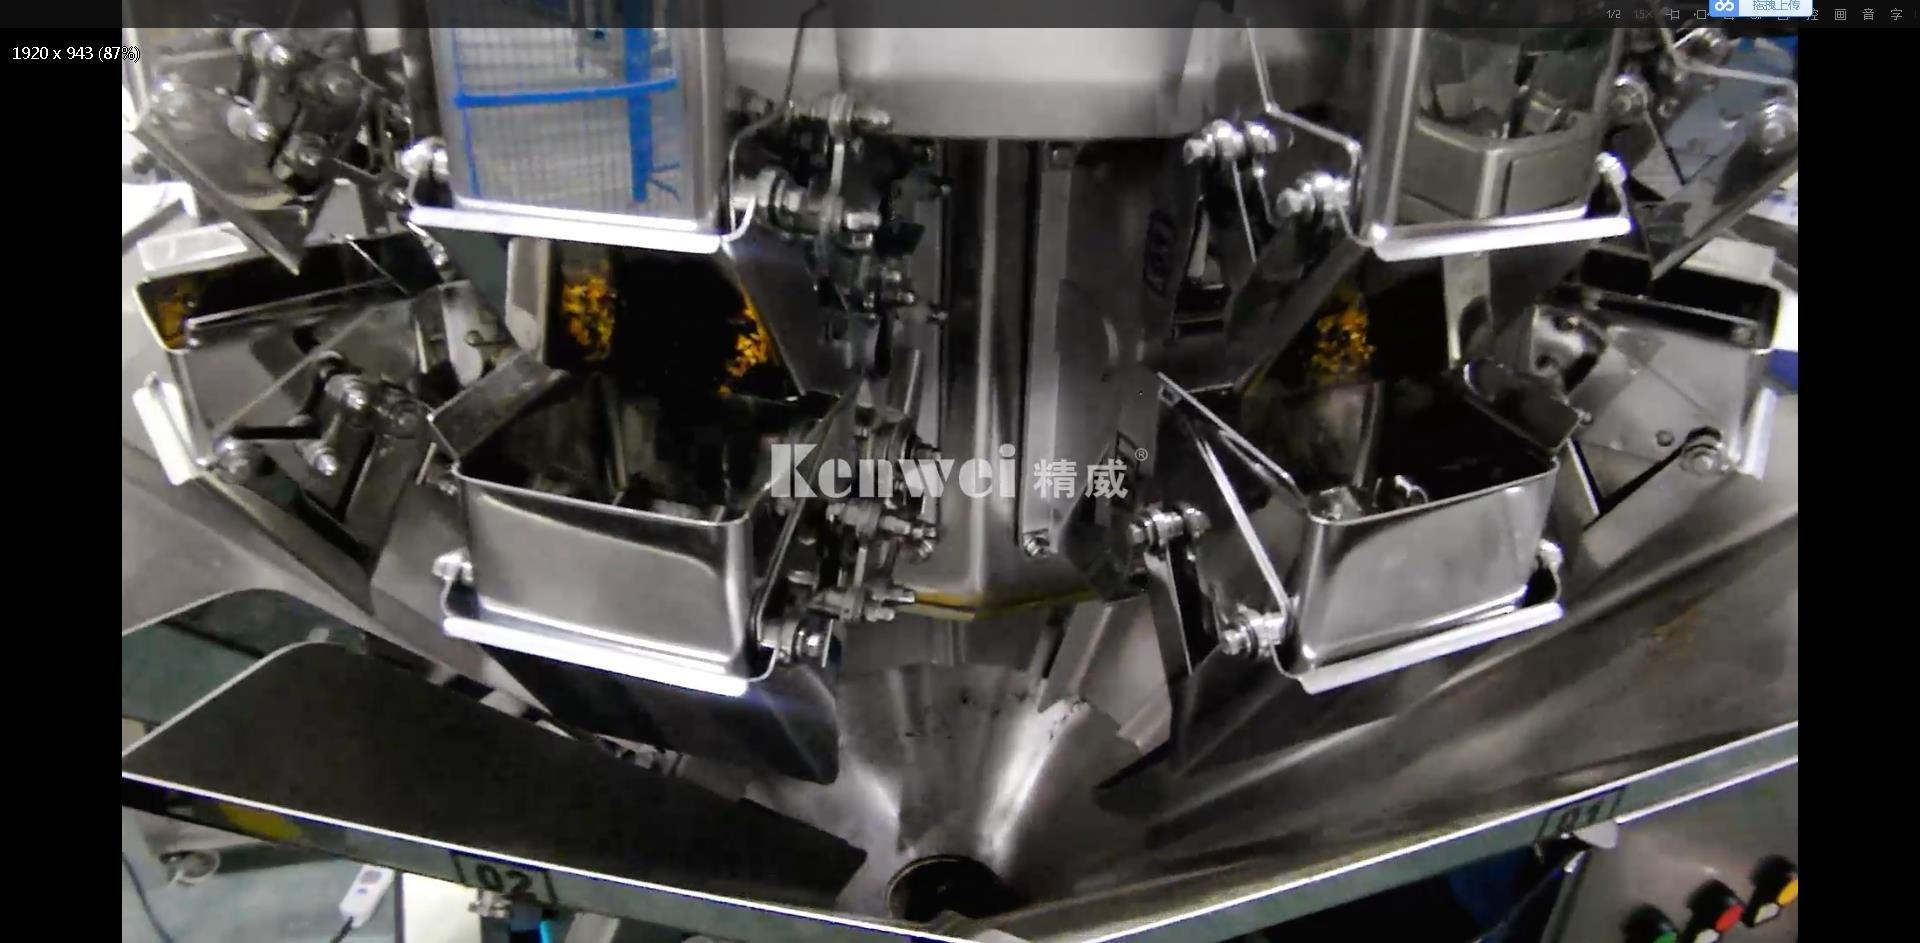 Mini Combined Weighing And Packaging Machine - Dried chrysanthemum